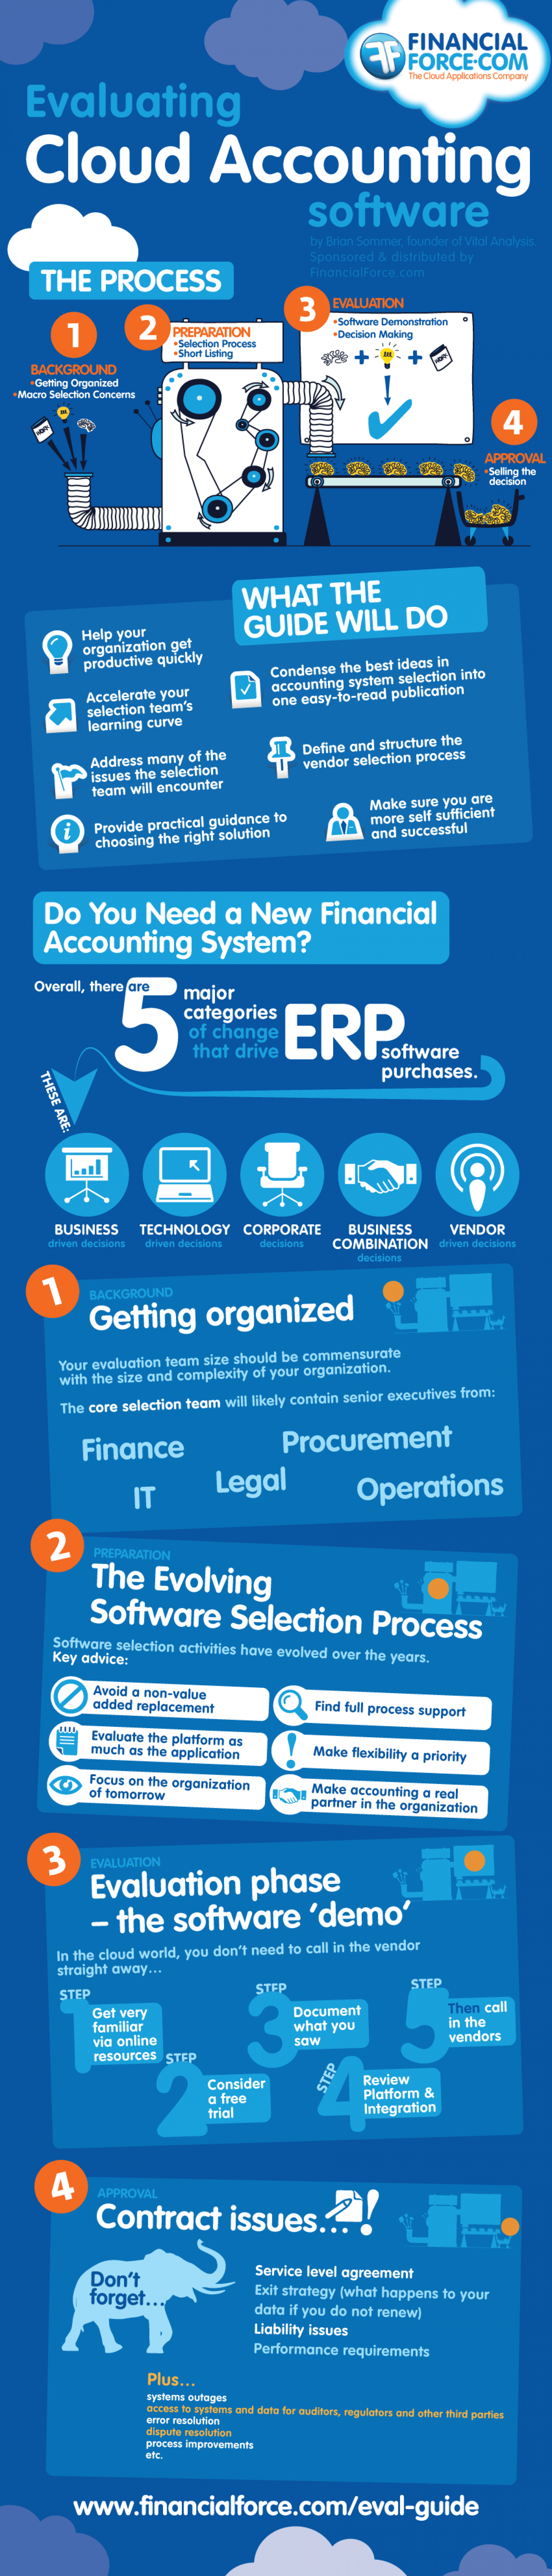 Evaluating Cloud Accounting Software Infographic